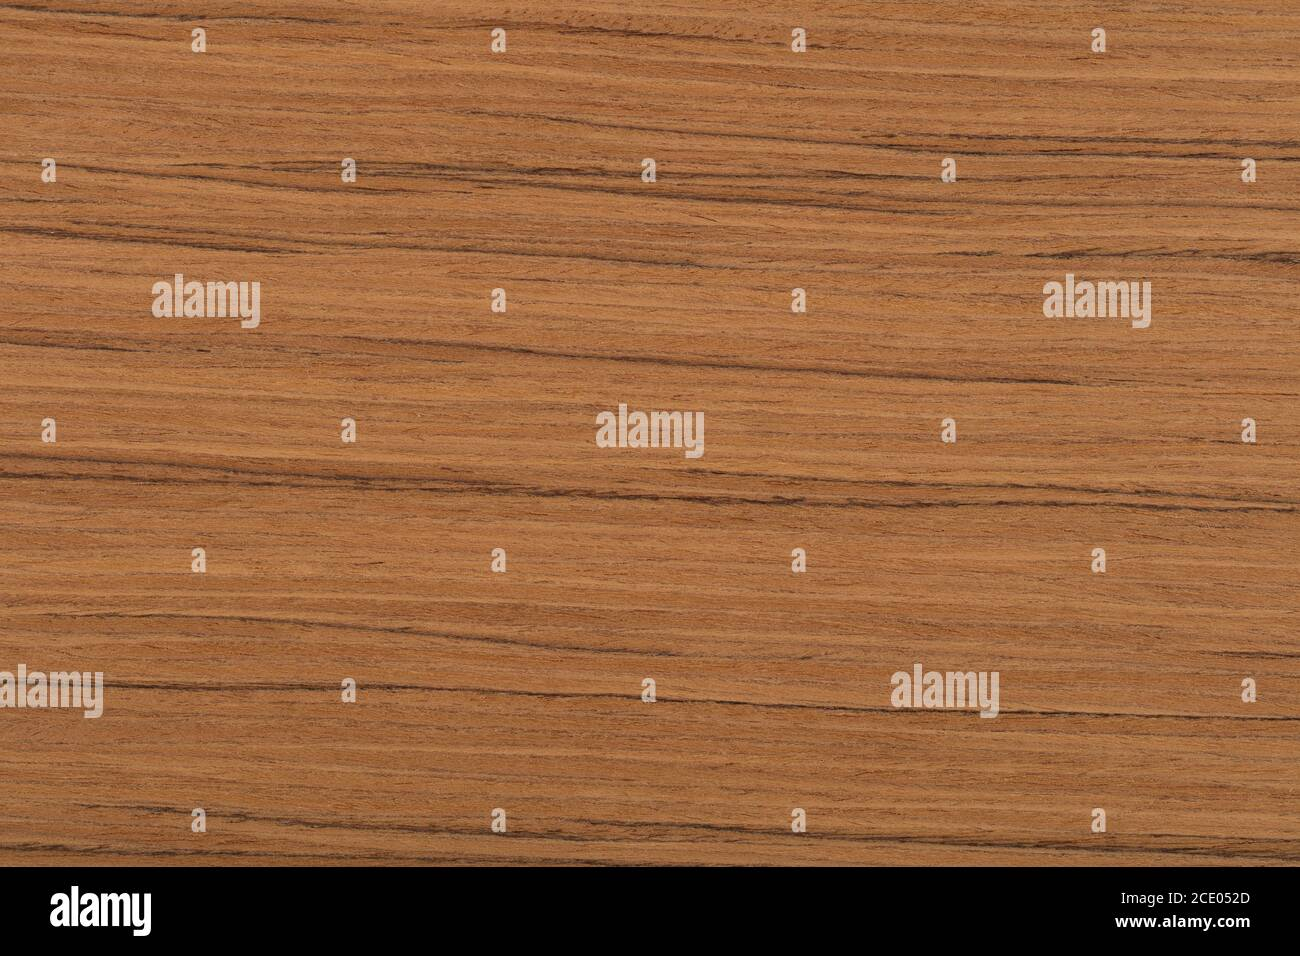 Natural Teak Veneer Background In Attractive Brown Color High Quality Wooden Texture Stock Photo Alamy